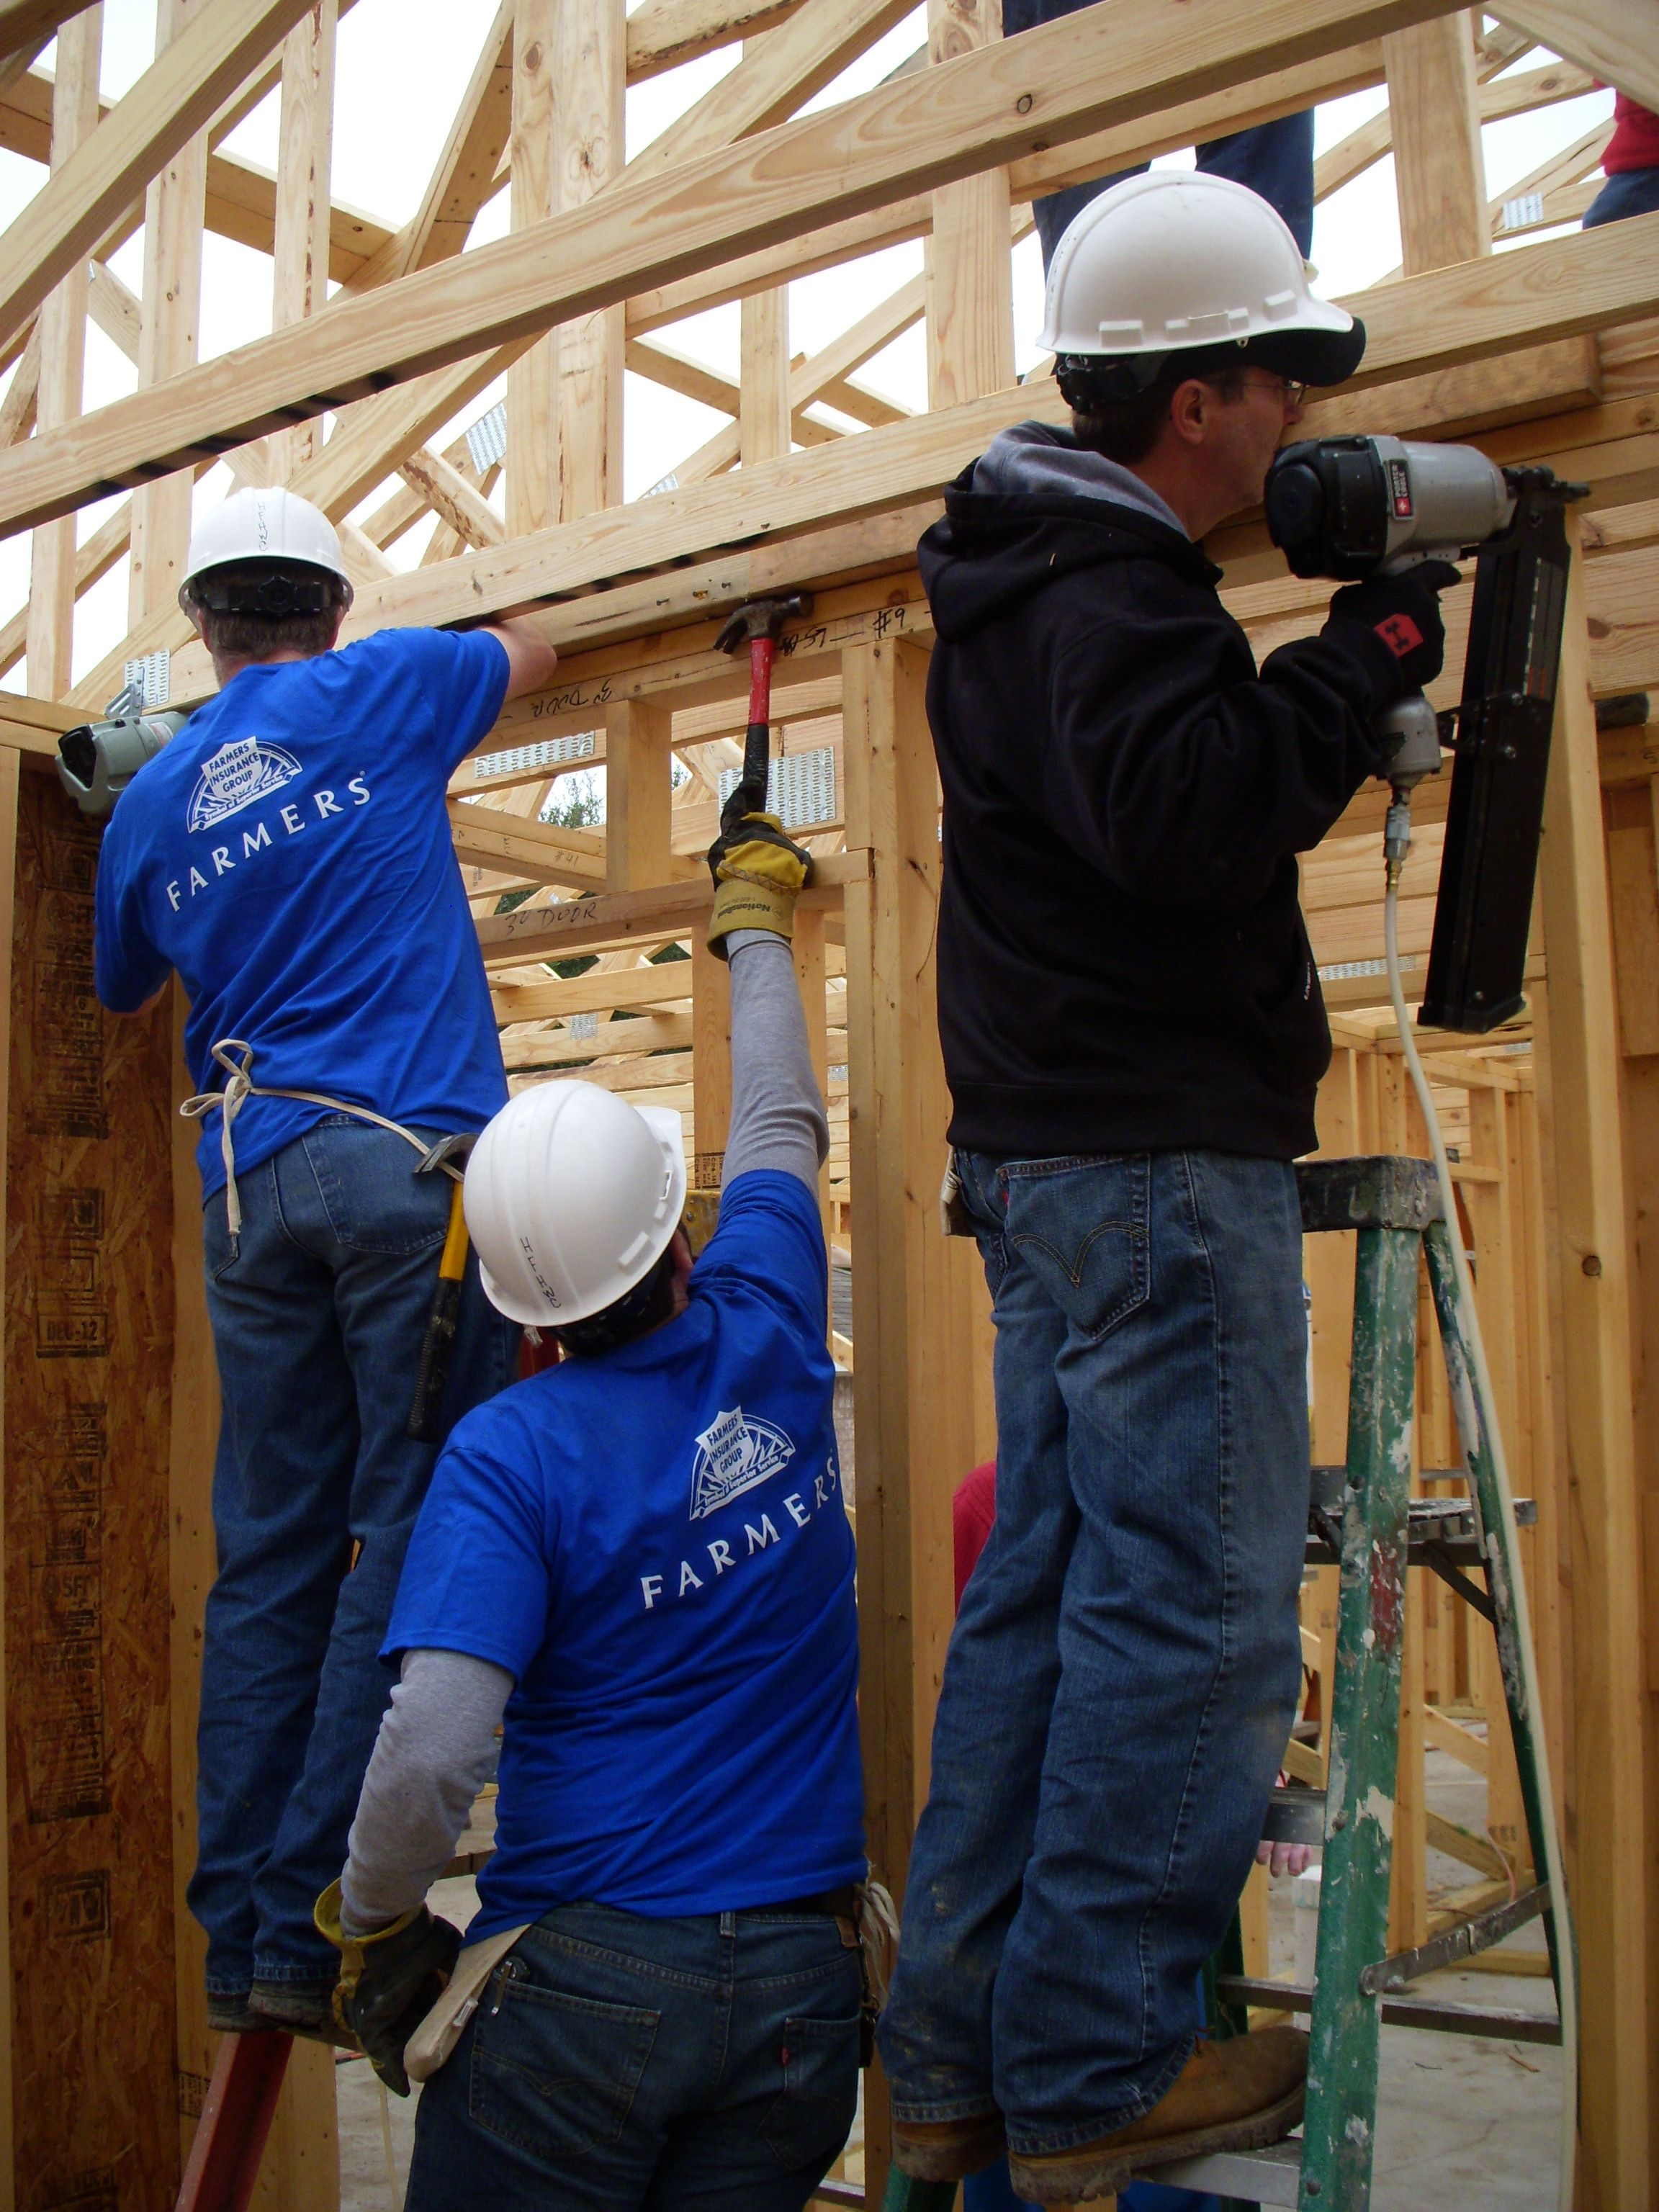 Farmers Insurance volunteers, because we are more than